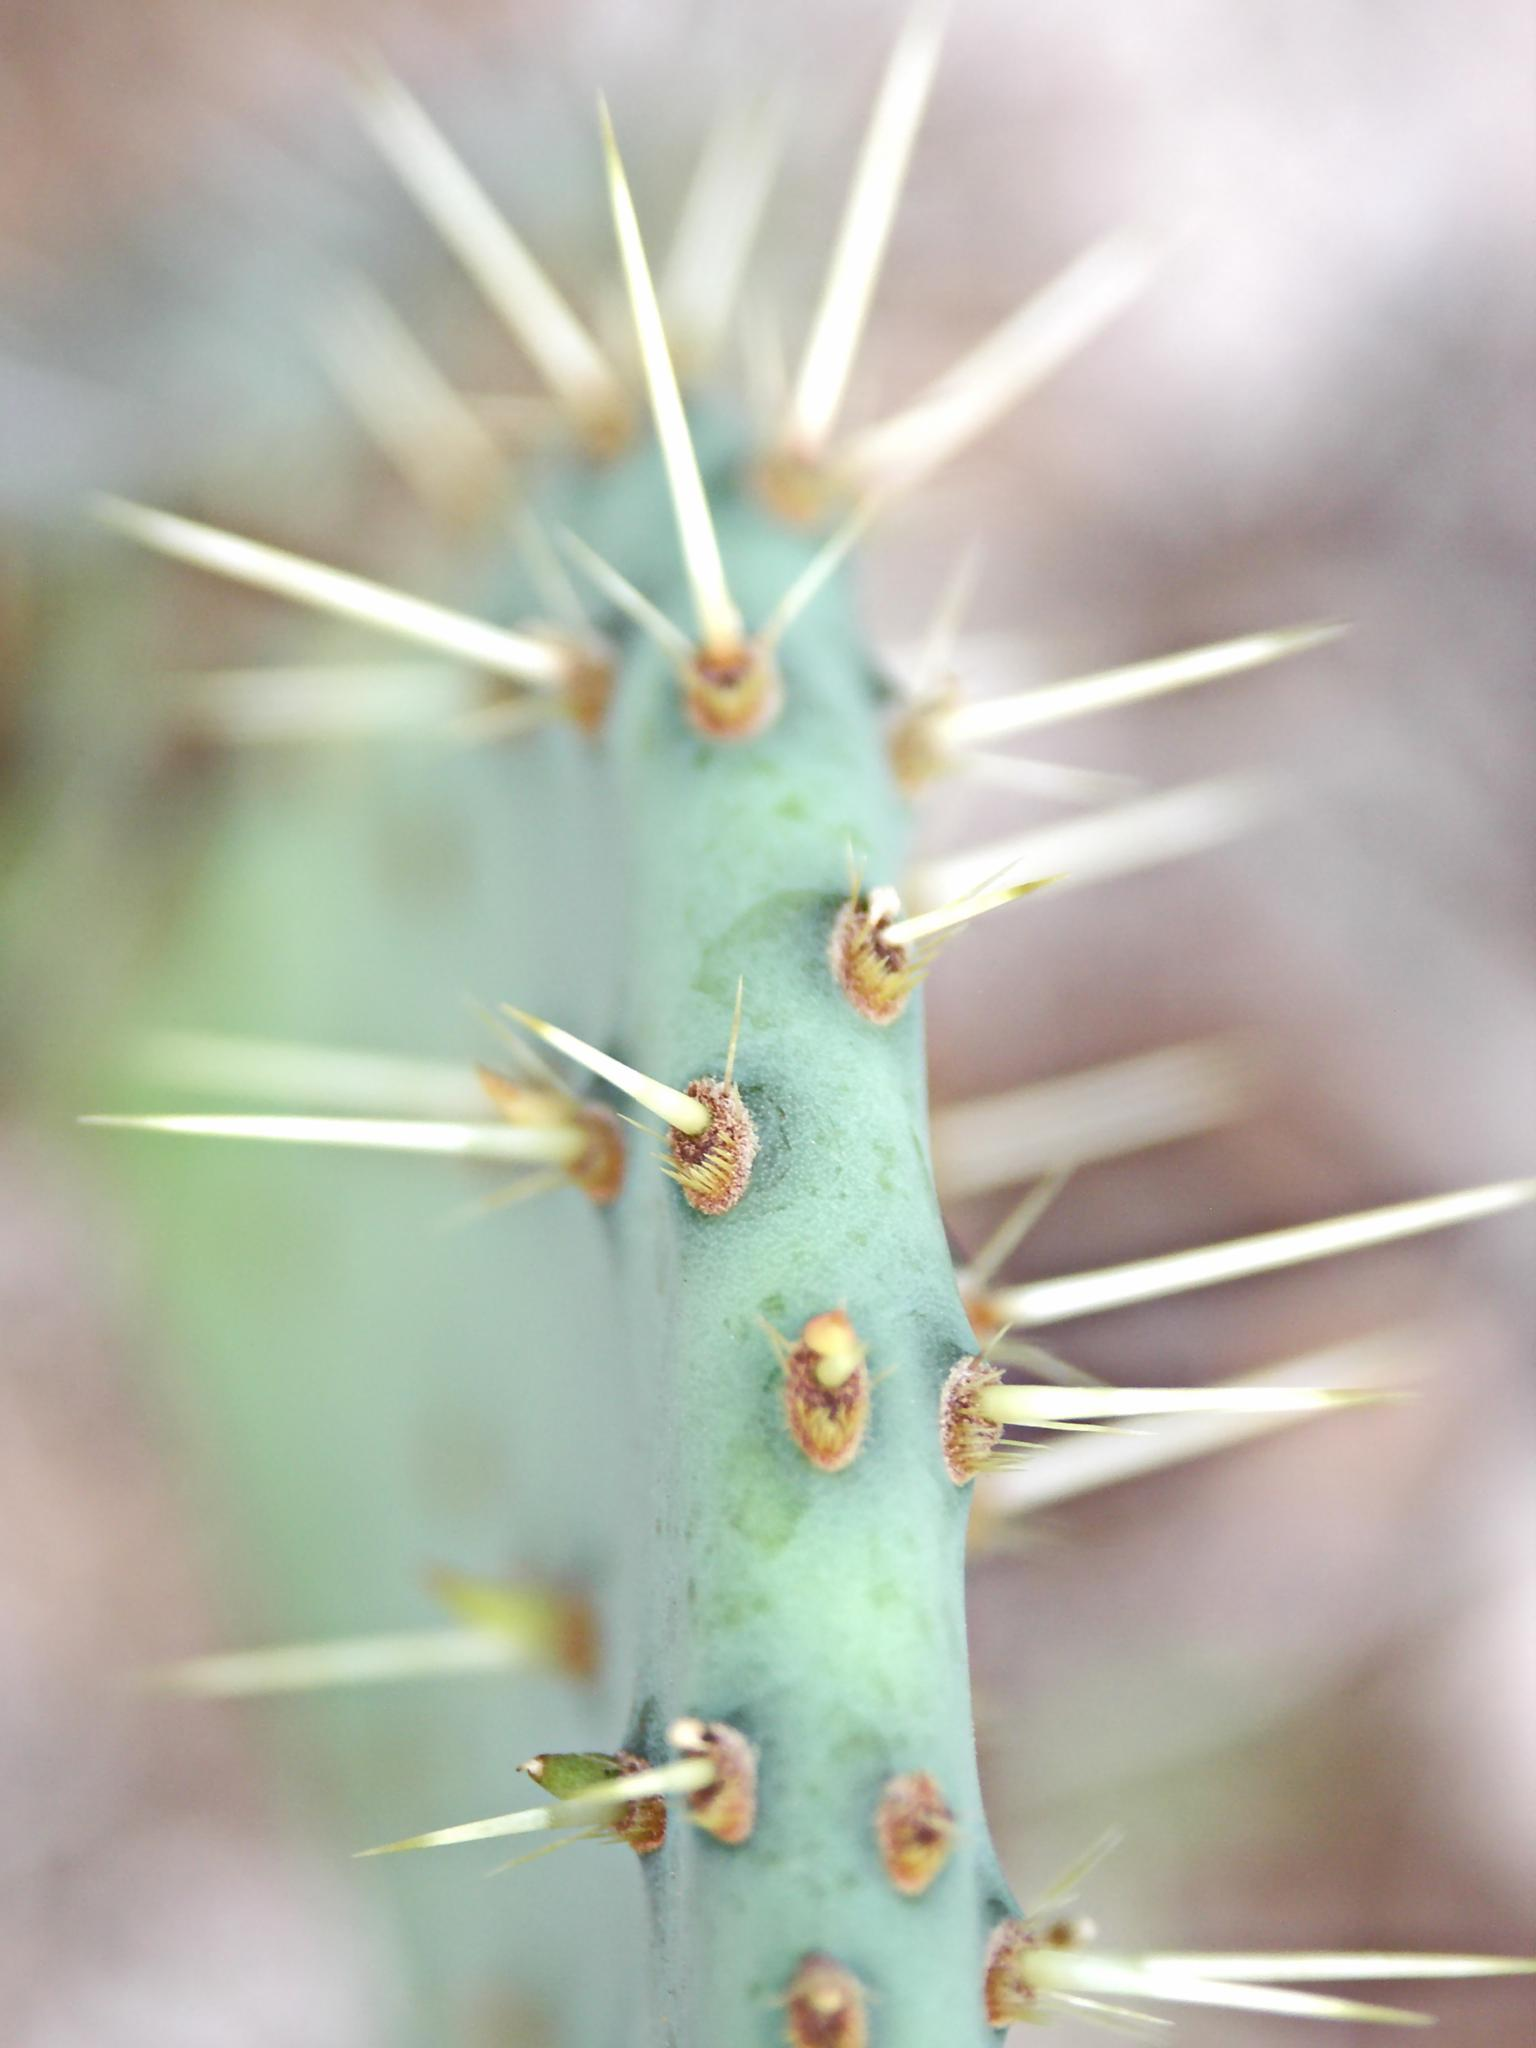 Cactus by Raymond Thill